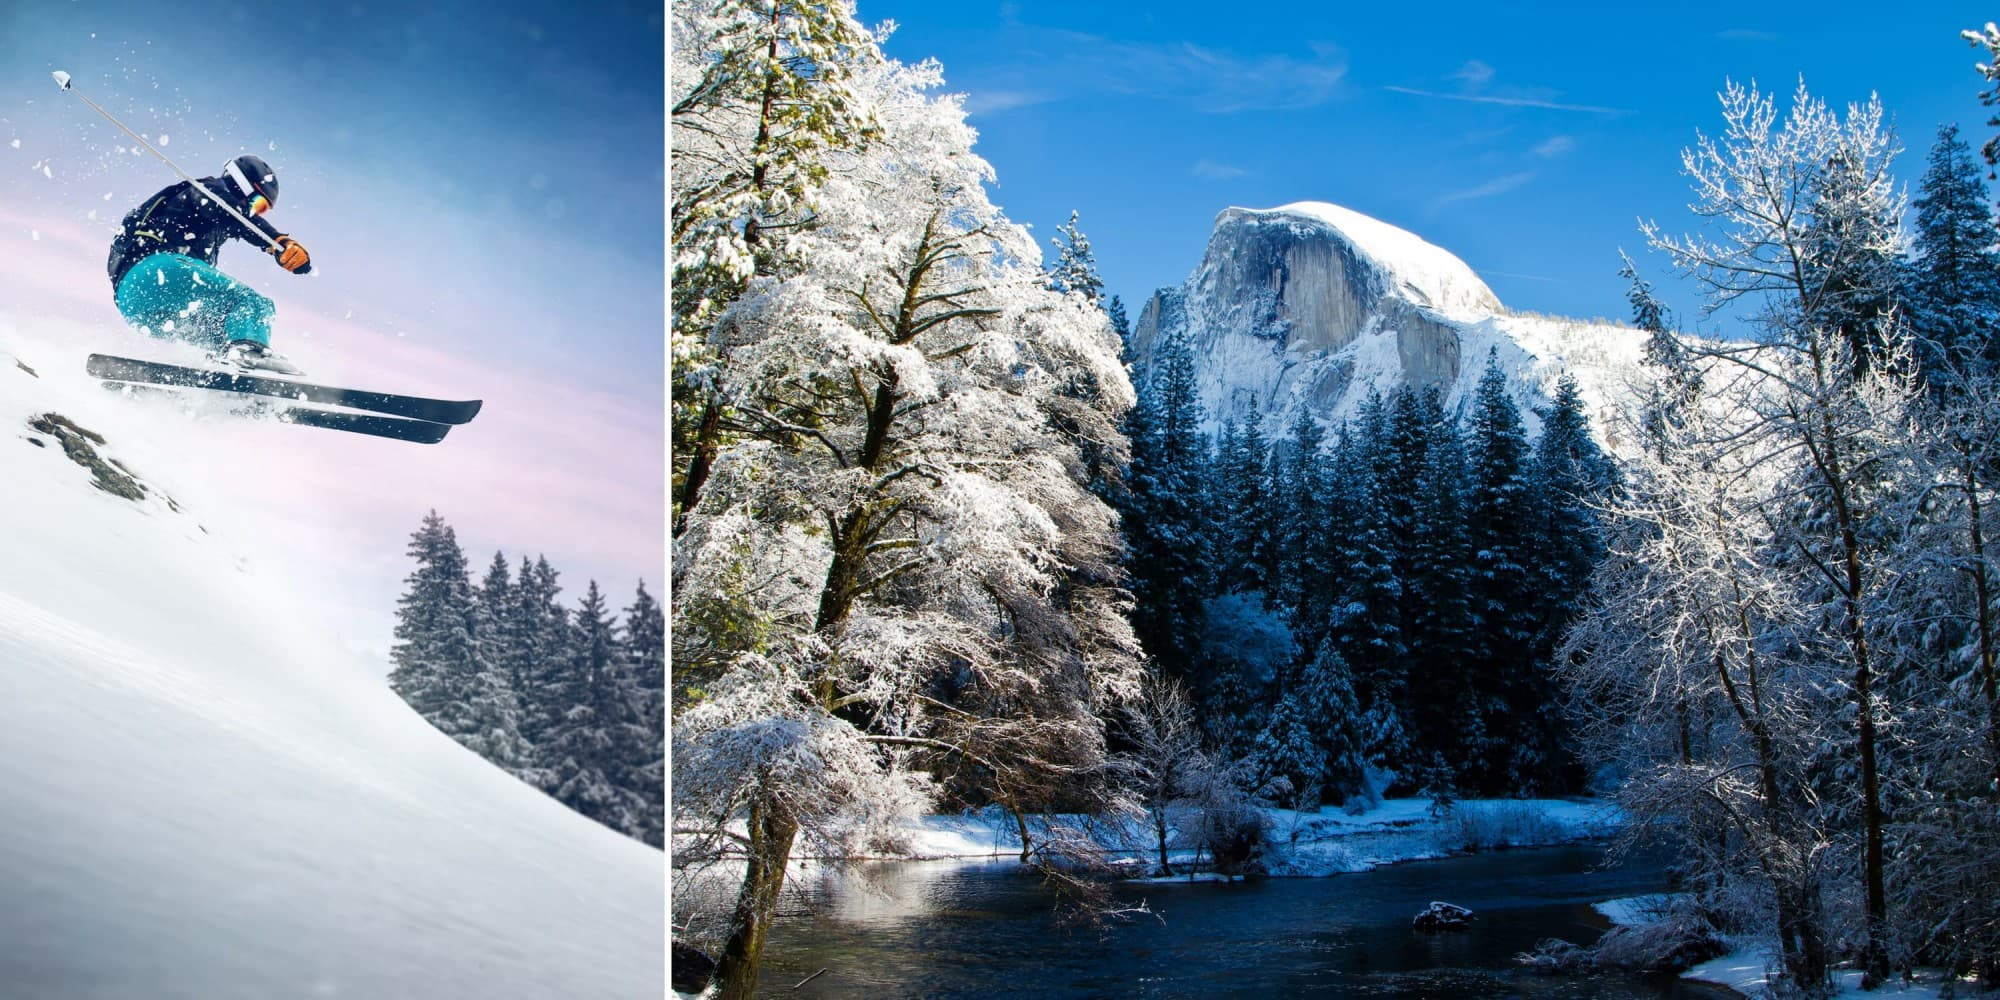 split image of a skiier flying through the air at dusk beside an image of half dome covered in snow